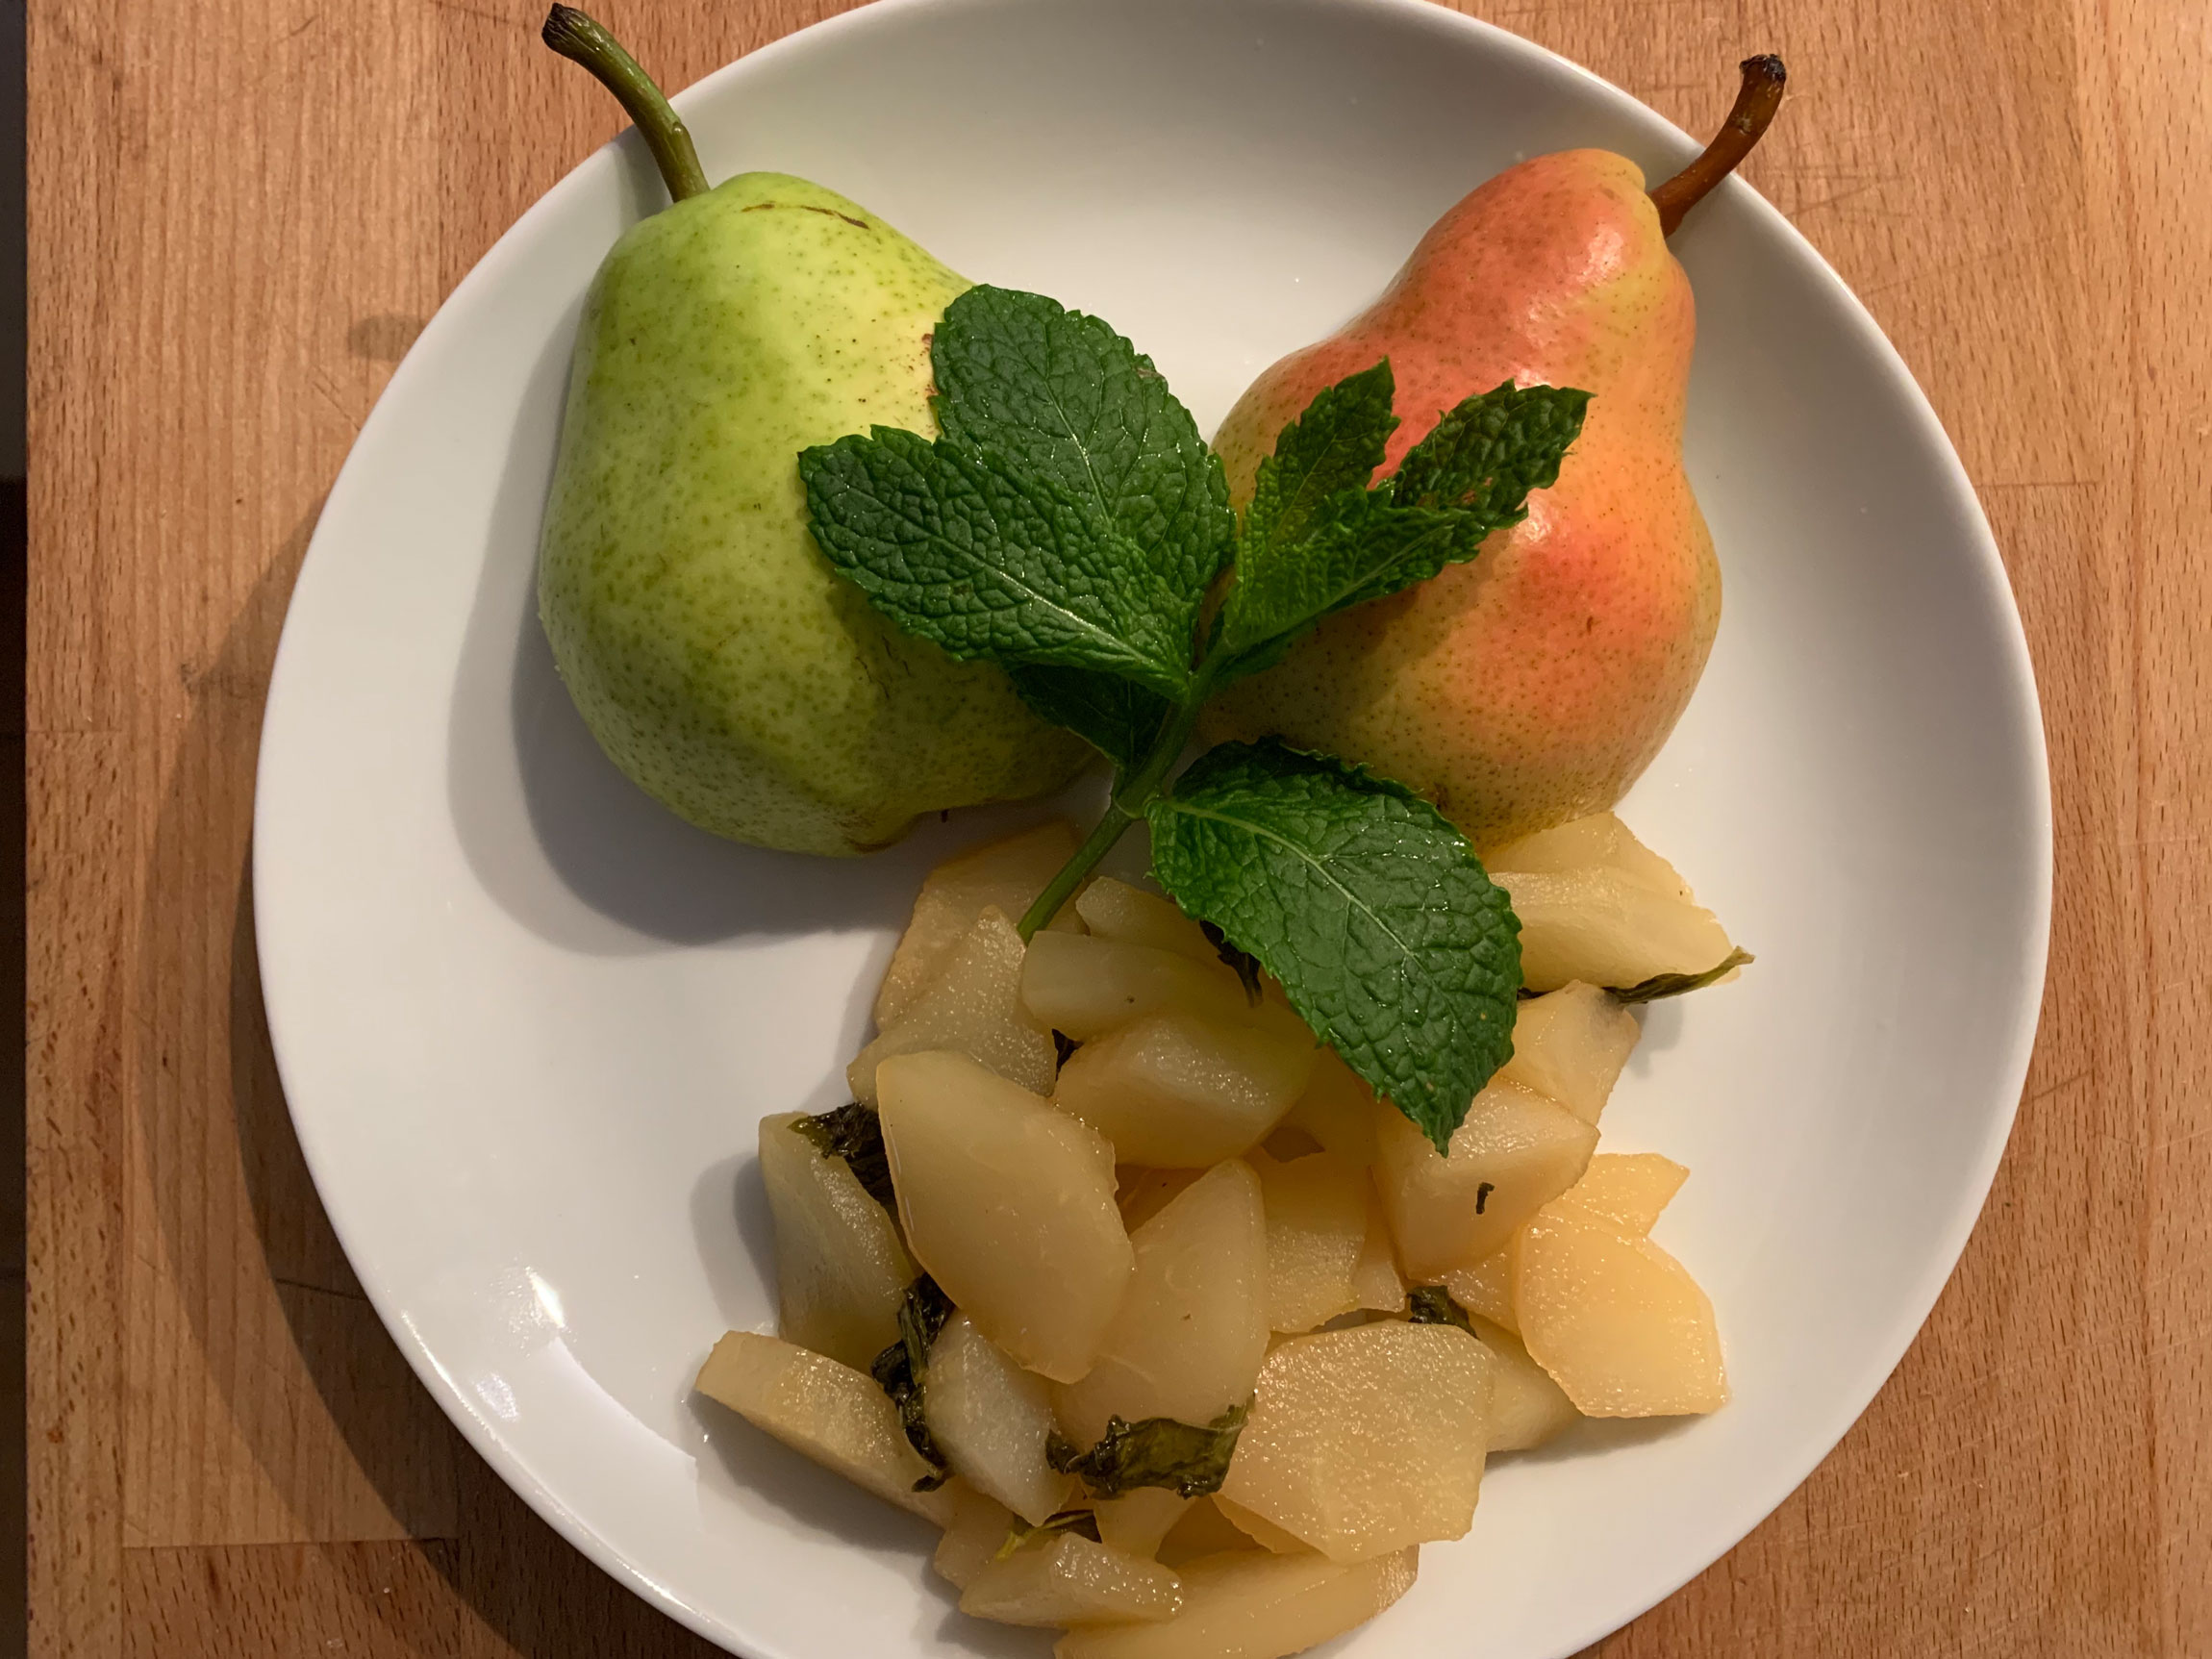 Pears with honey and mint